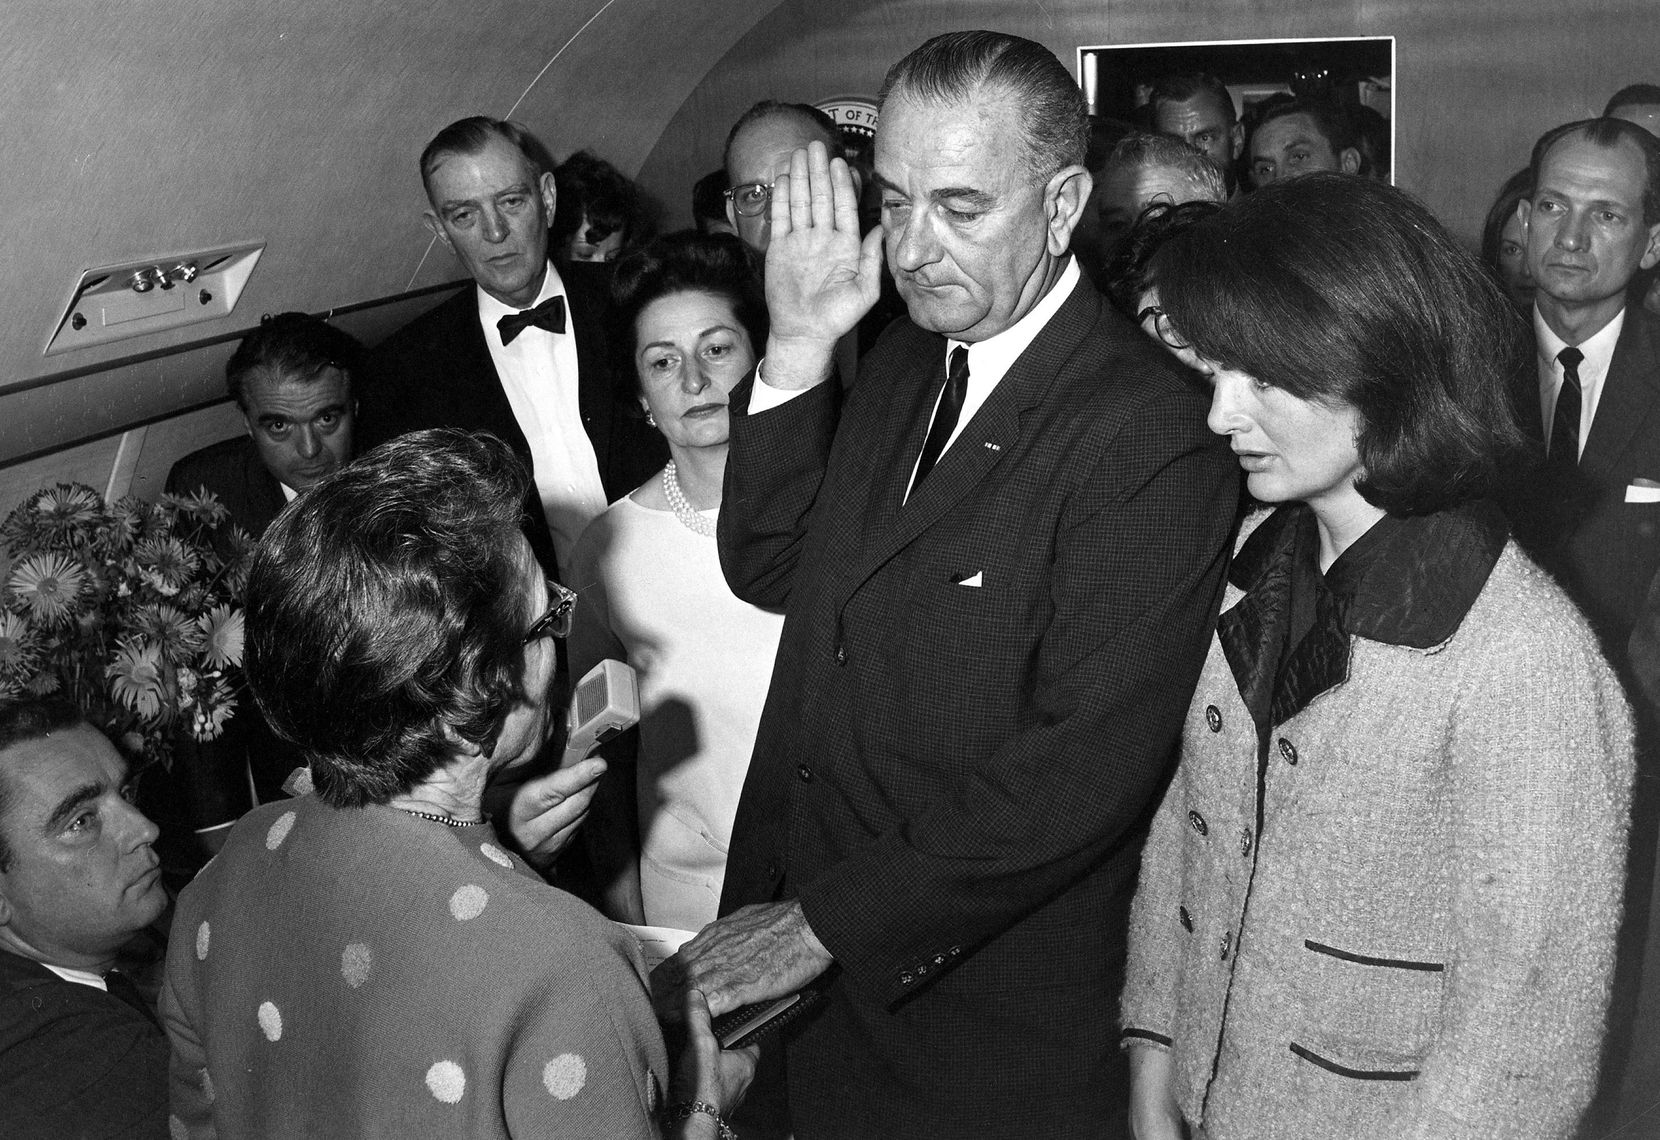 Judge Sarah T. Hughes administered the presidential oath to Lyndon Johnson aboard Air Force One at Love Field after Kennedy's death. Johnson's wife, Lady Bird (background) and the slain president's widow, Jackie Kennedy, were among the witnesses.